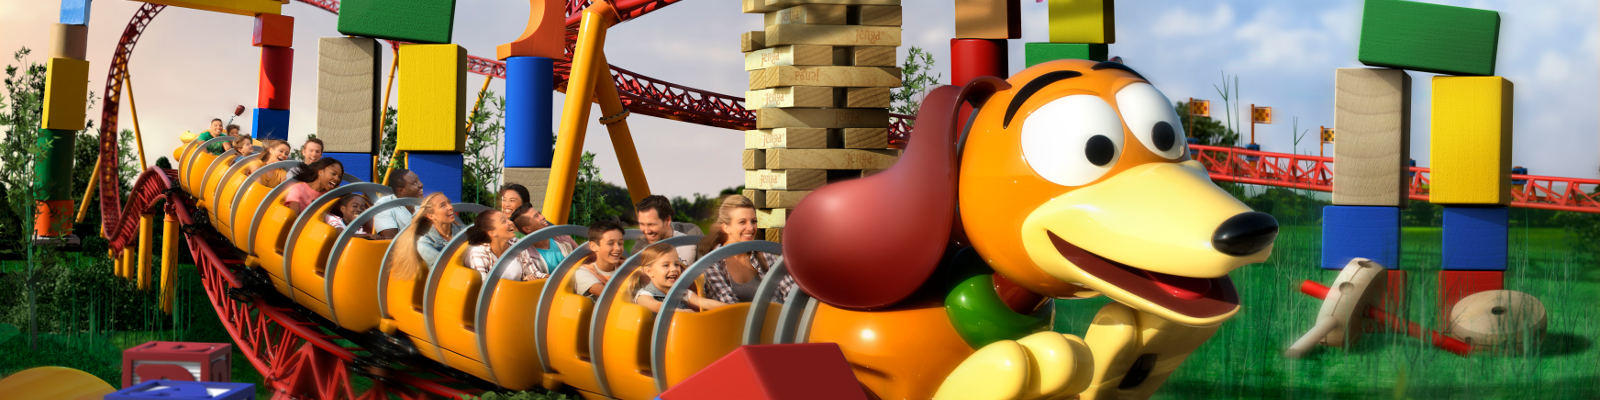 roller coaster toy story land disney world florida